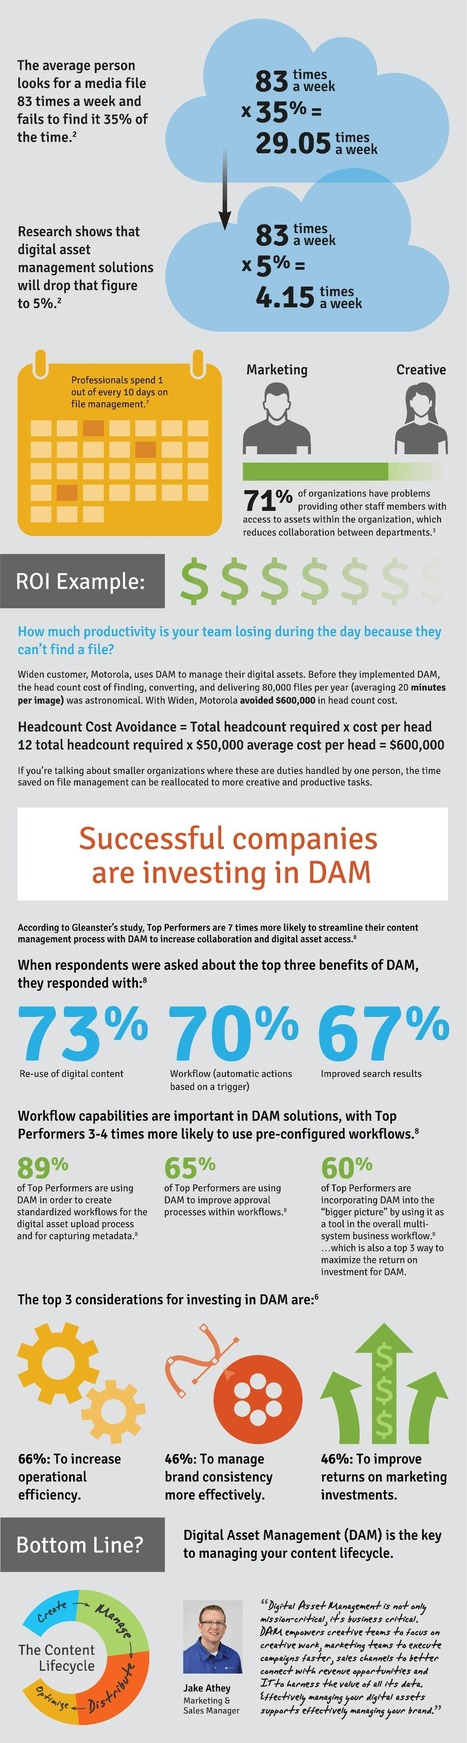 The Business Case for DAM Infographic from Widen | JamehDebui DAM | Scoop.it